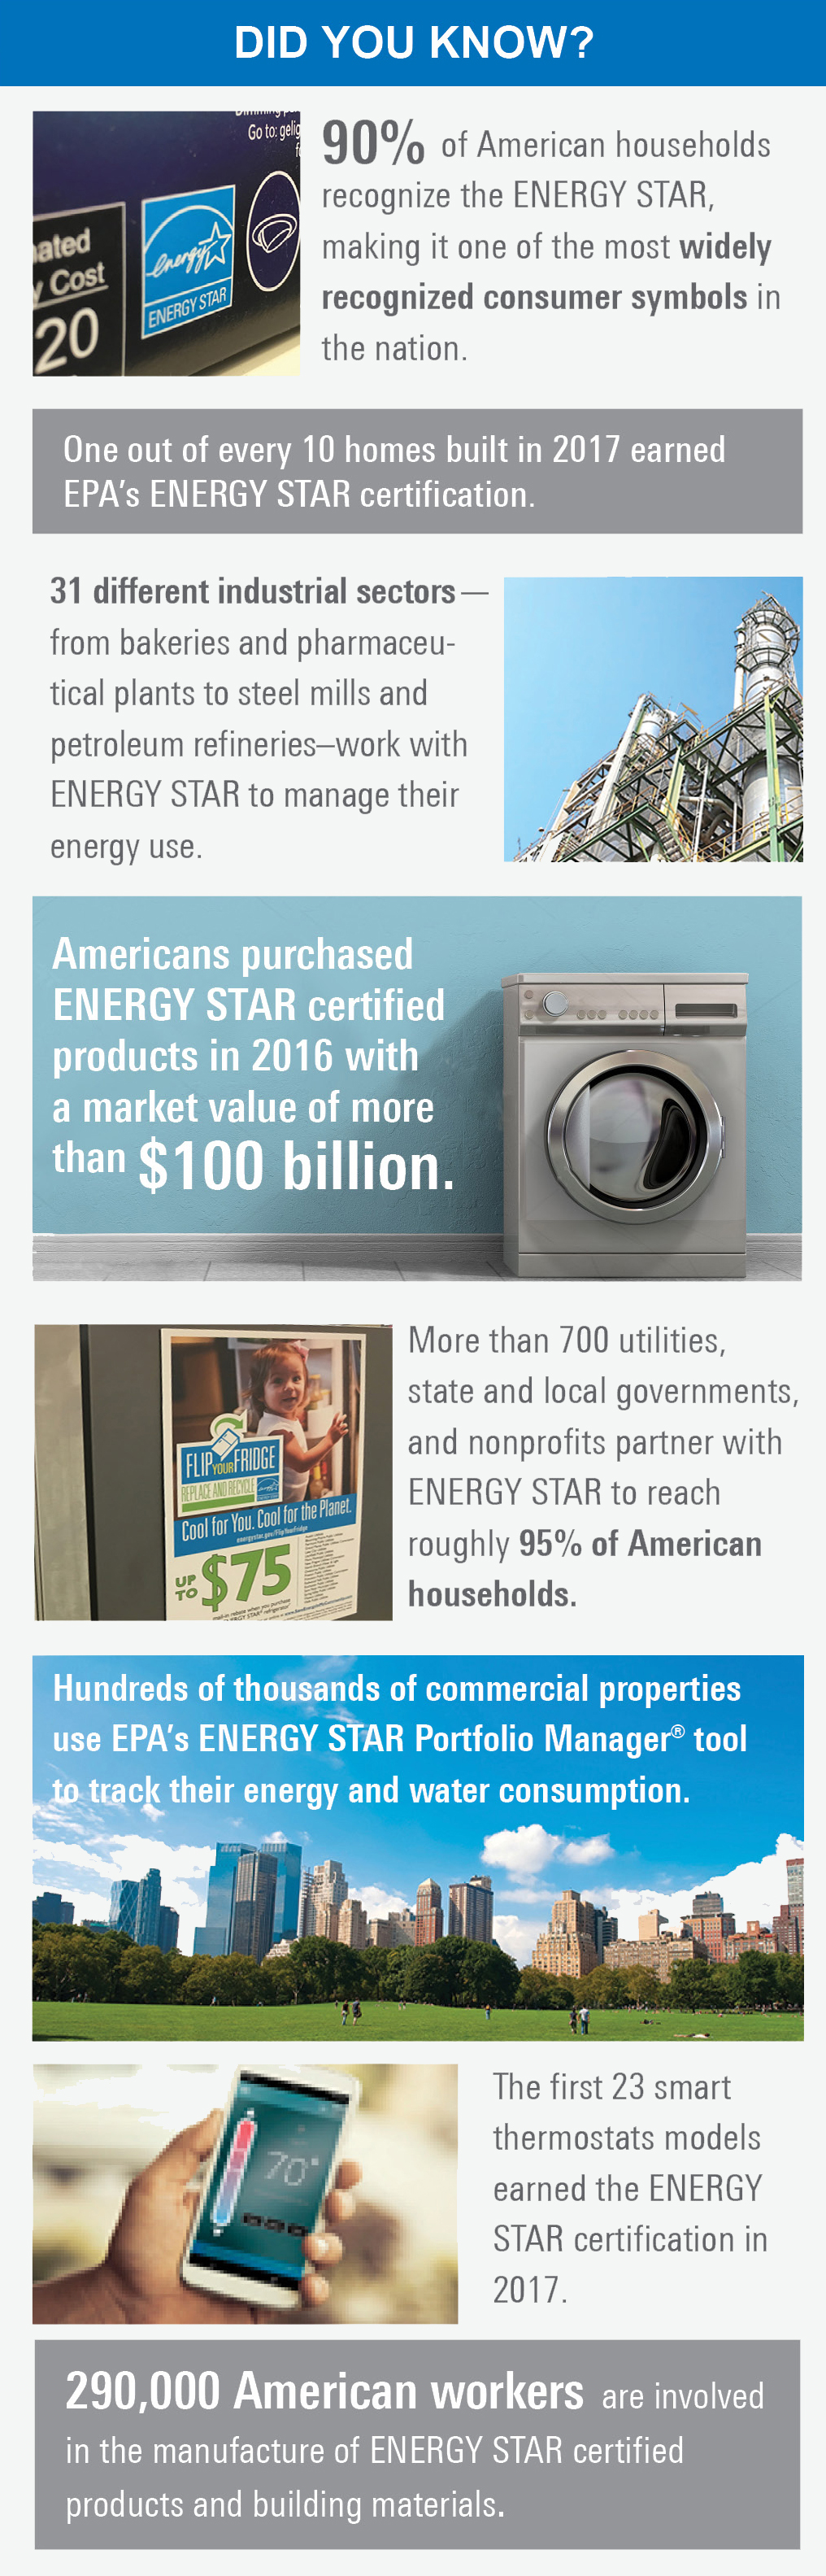 Did you know about ENERGY STAR